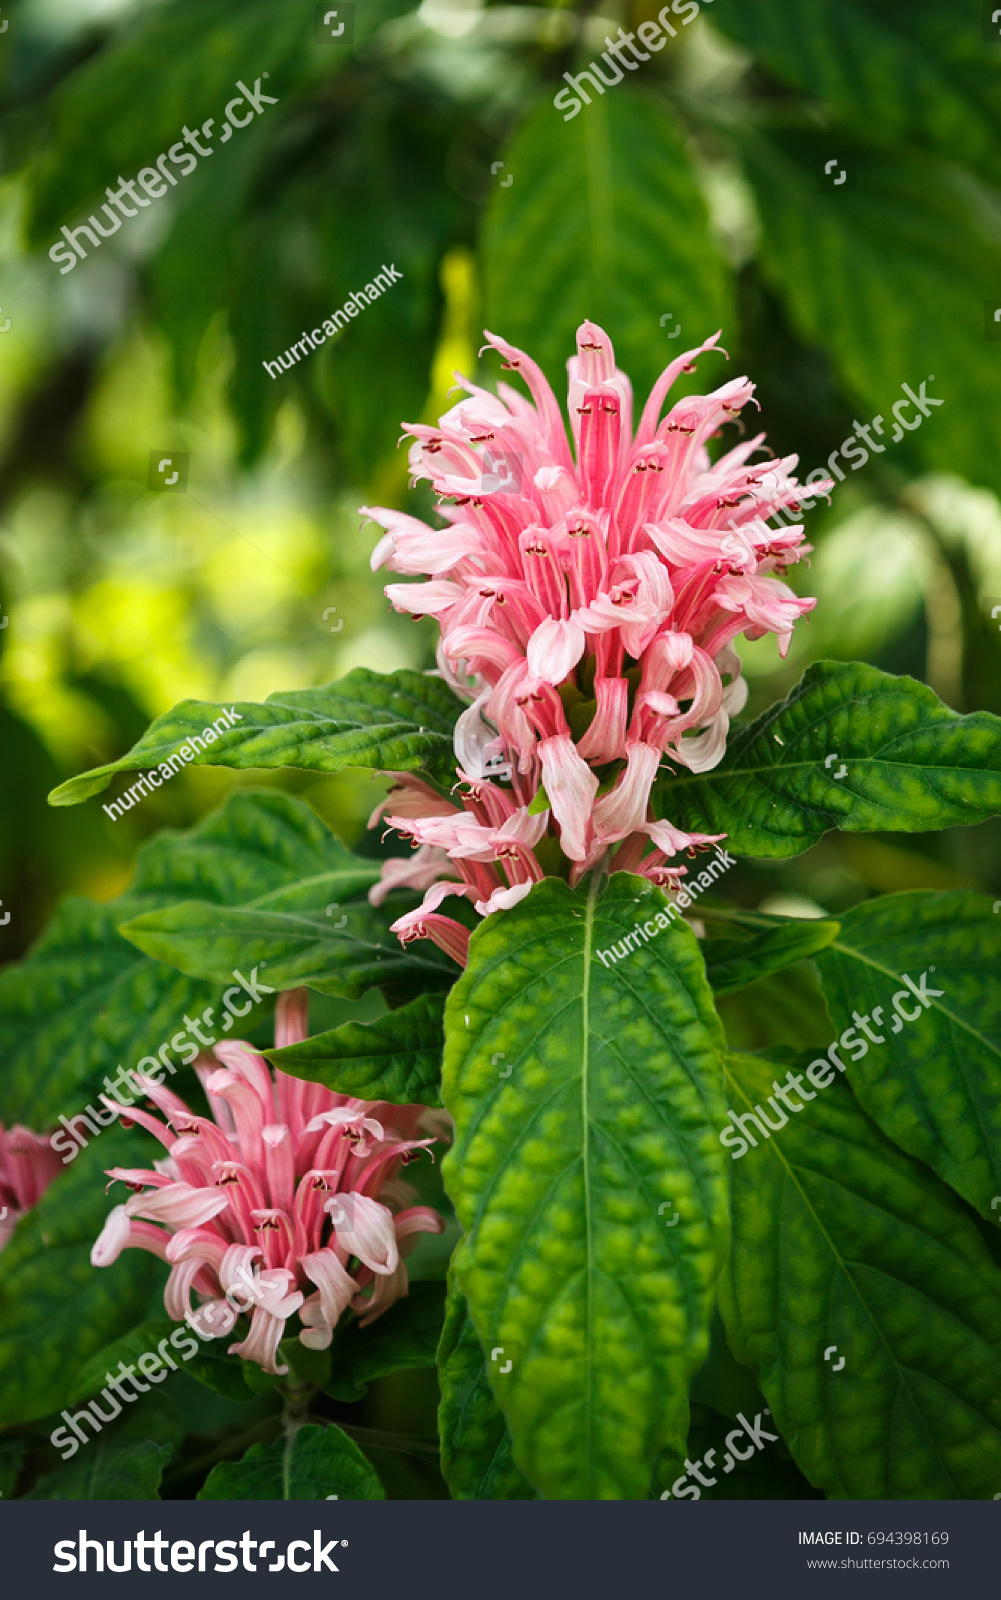 Beautiful acanthaceae flowers cultivated botanical garden exotic beautiful acanthaceae flowers cultivated in botanical gardenexotic plants grow in greenhouserare pink izmirmasajfo